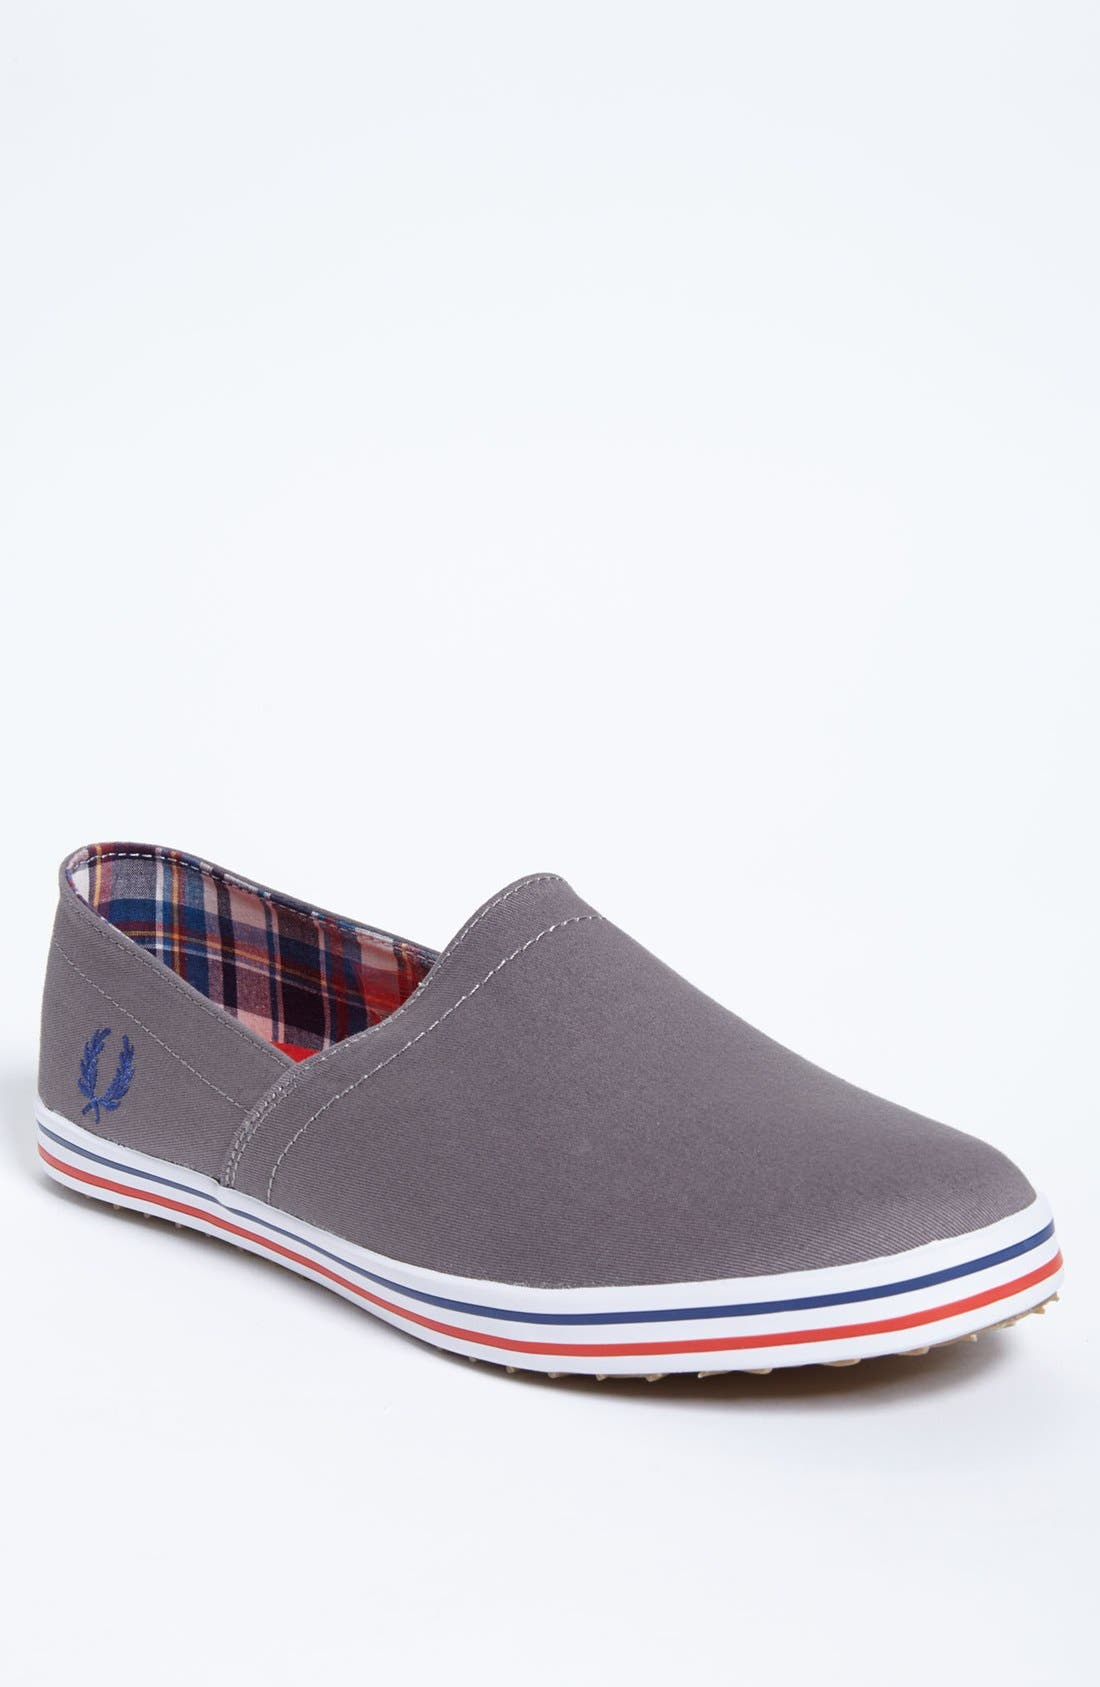 Alternate Image 1 Selected - Fred Perry 'Kingston Stampdown' Slip-On